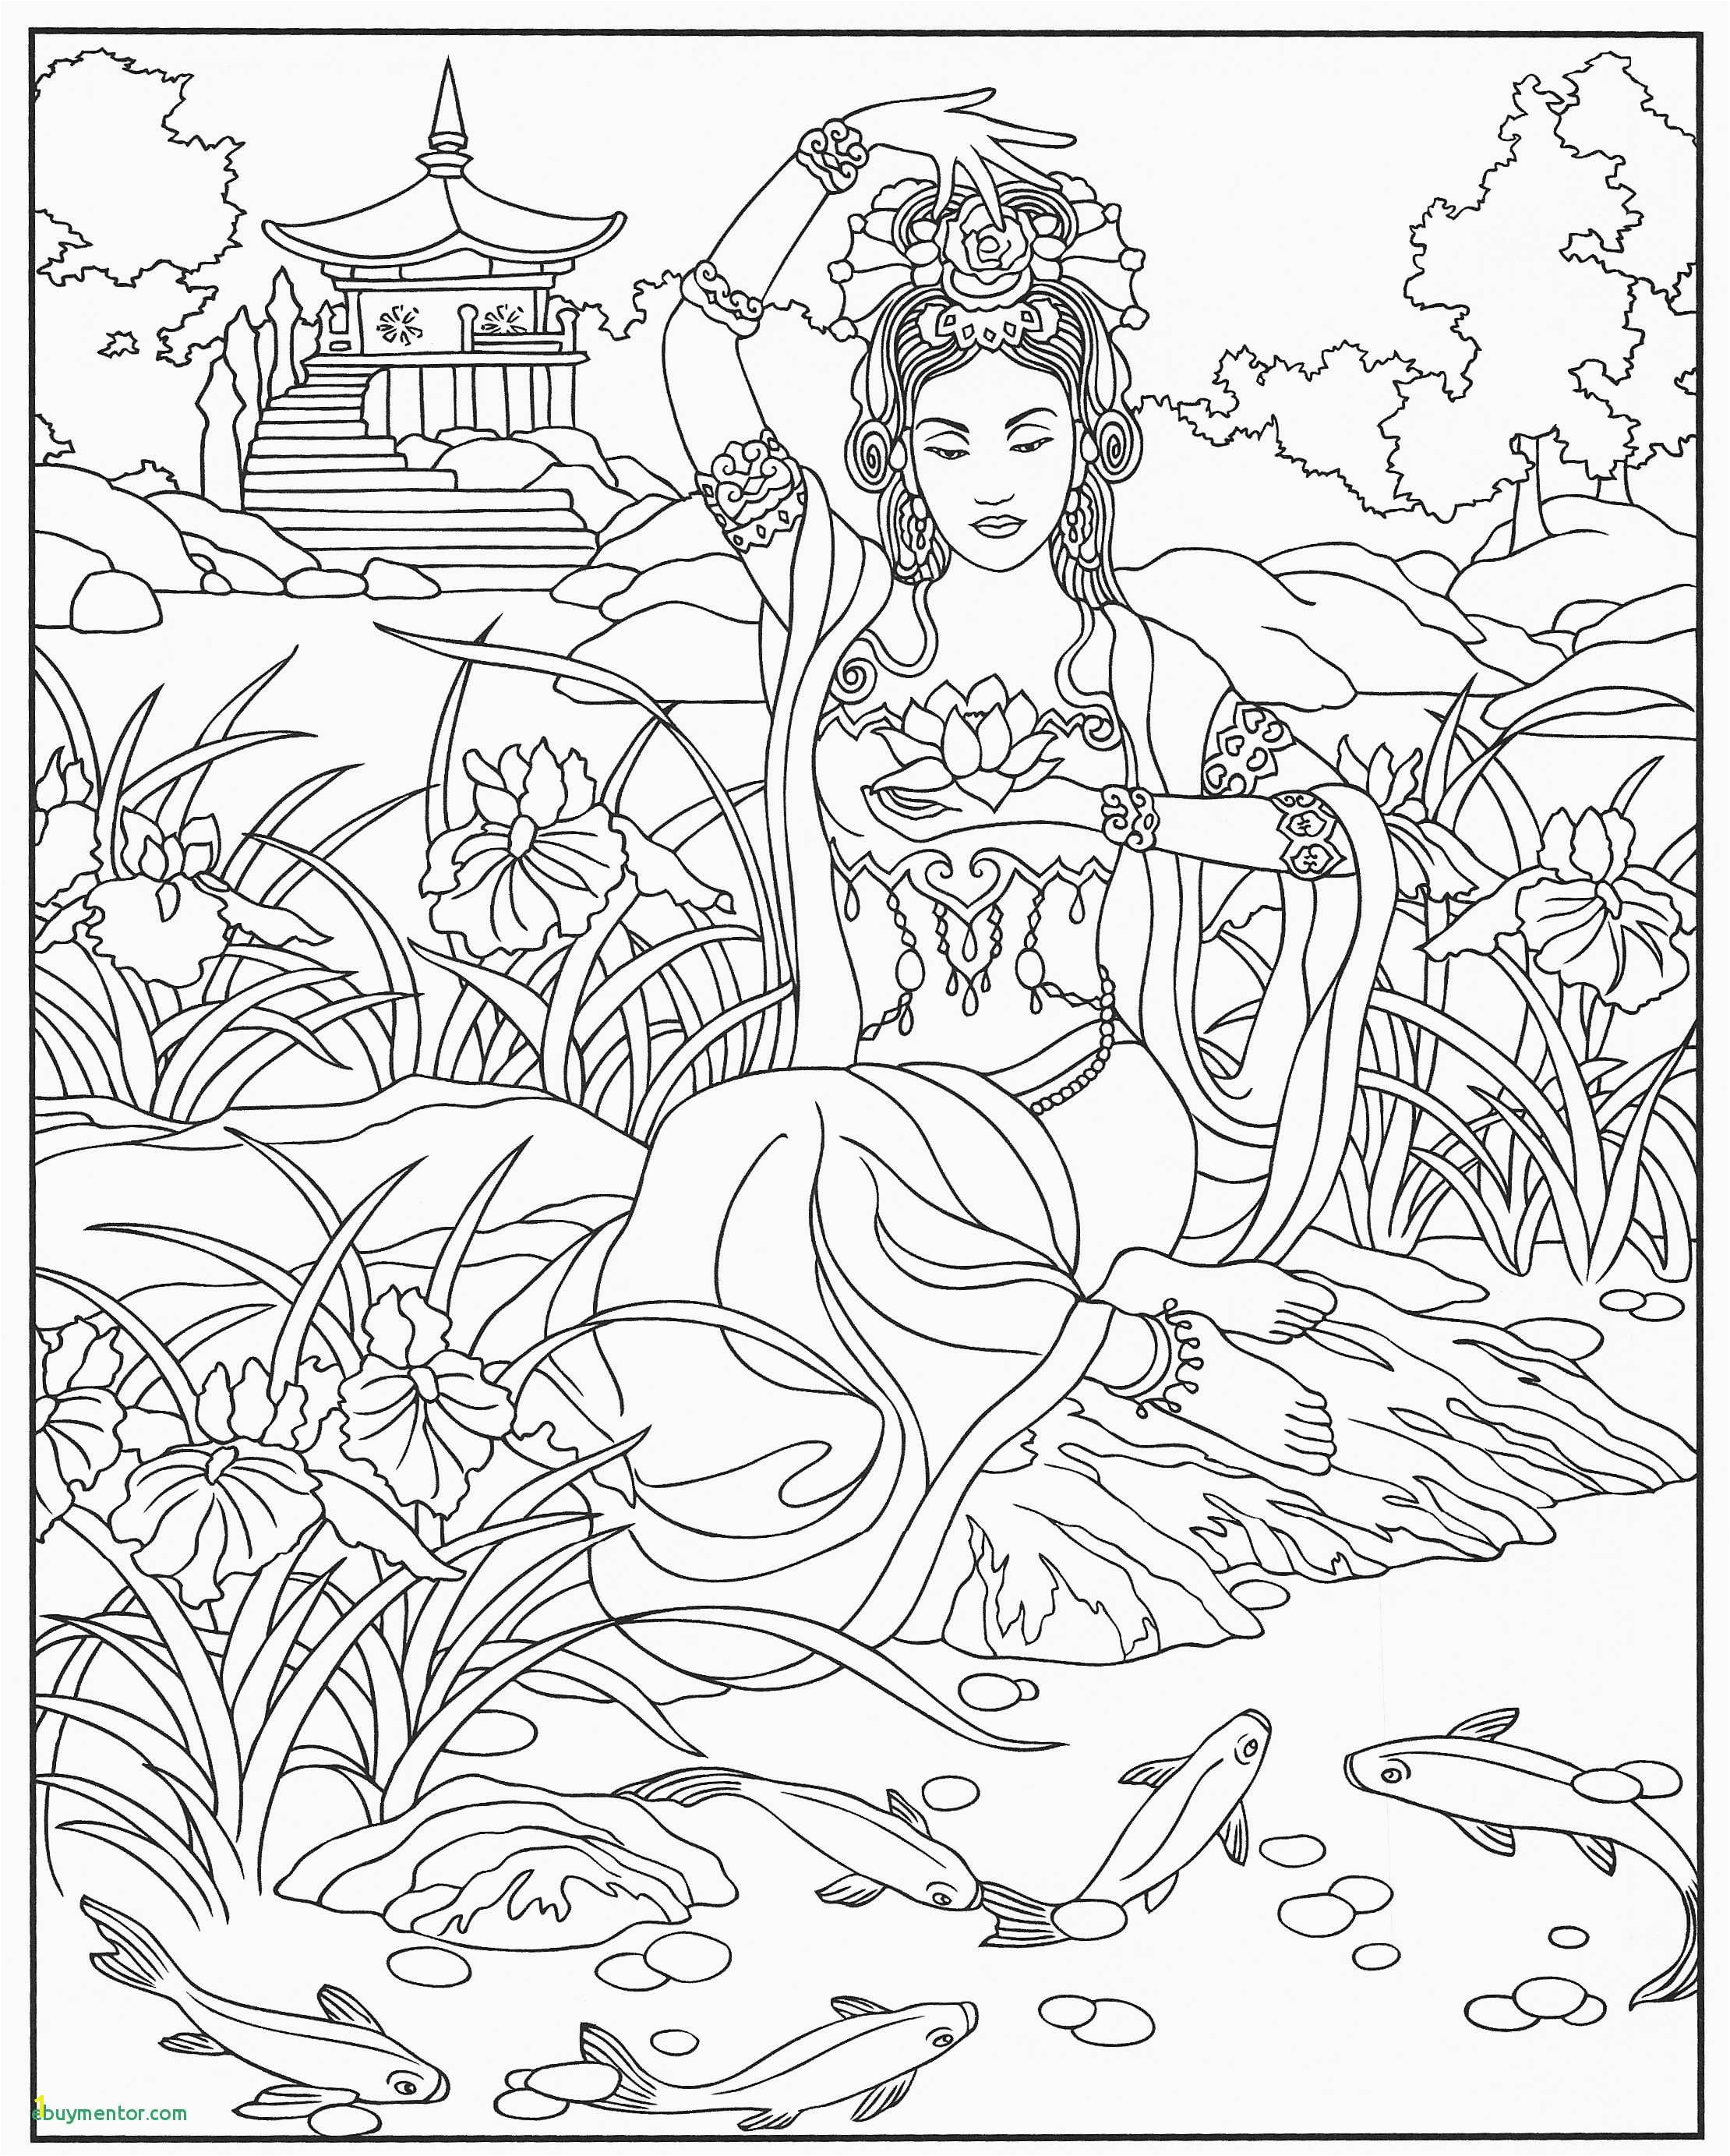 Phone Coloring Pages Cool Coloring Page Unique Witch Coloring Pages New Crayola Pages 0d